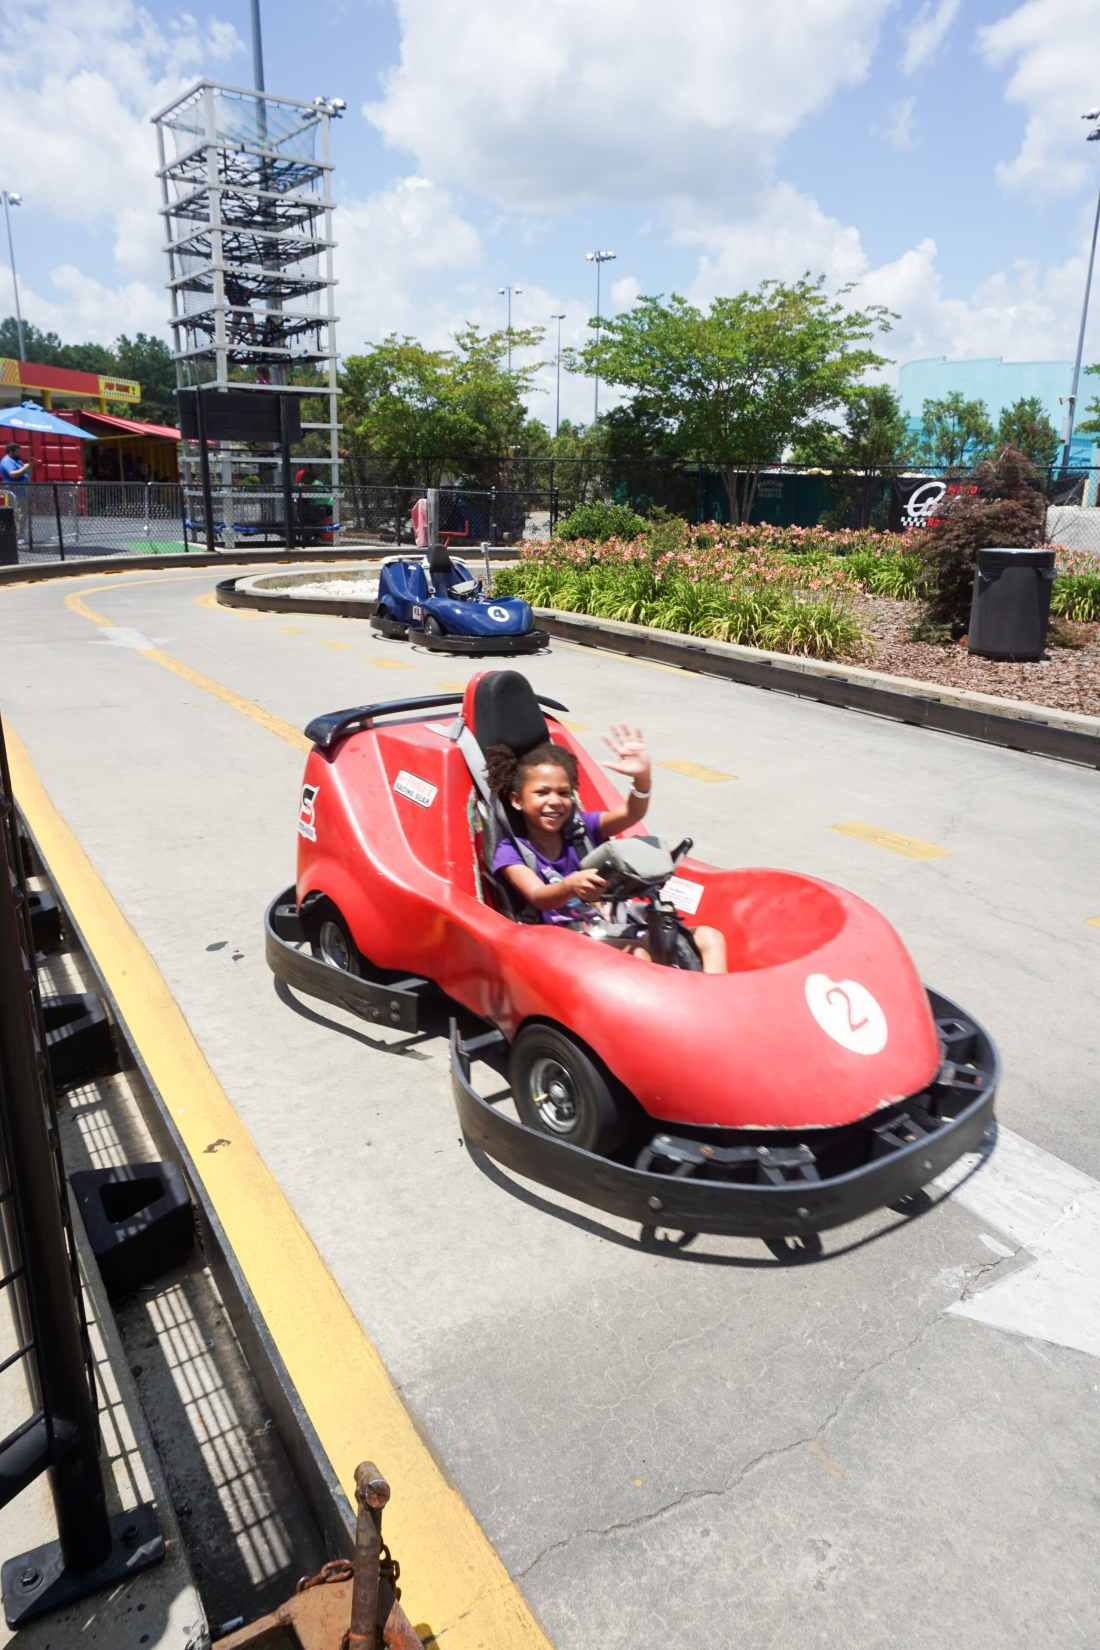 SpeedPark - Visit Cabarrus County Little GIrls Racing. Read more about our Racing Good Time at The Speedpark in Concord Mills North Carolina.